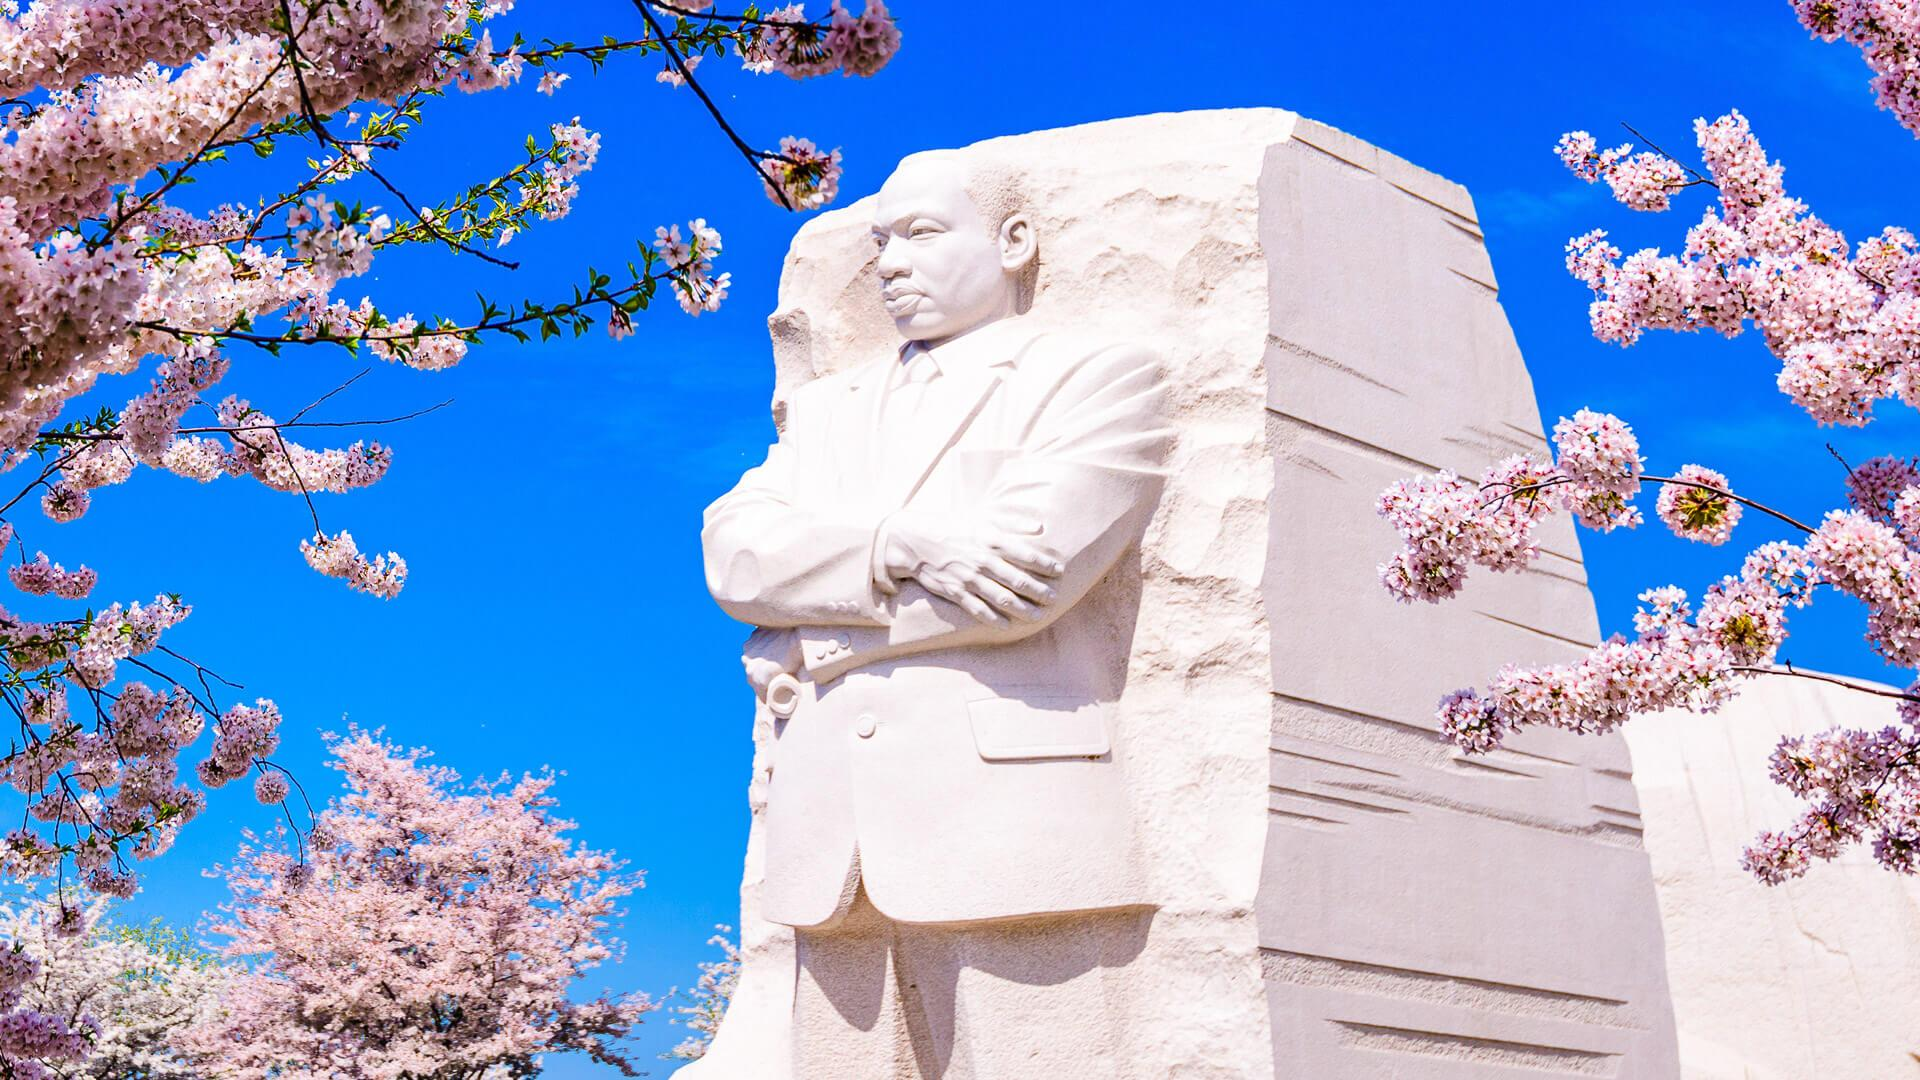 Freebies Discounts And Deals For Martin Luther King Jr Day